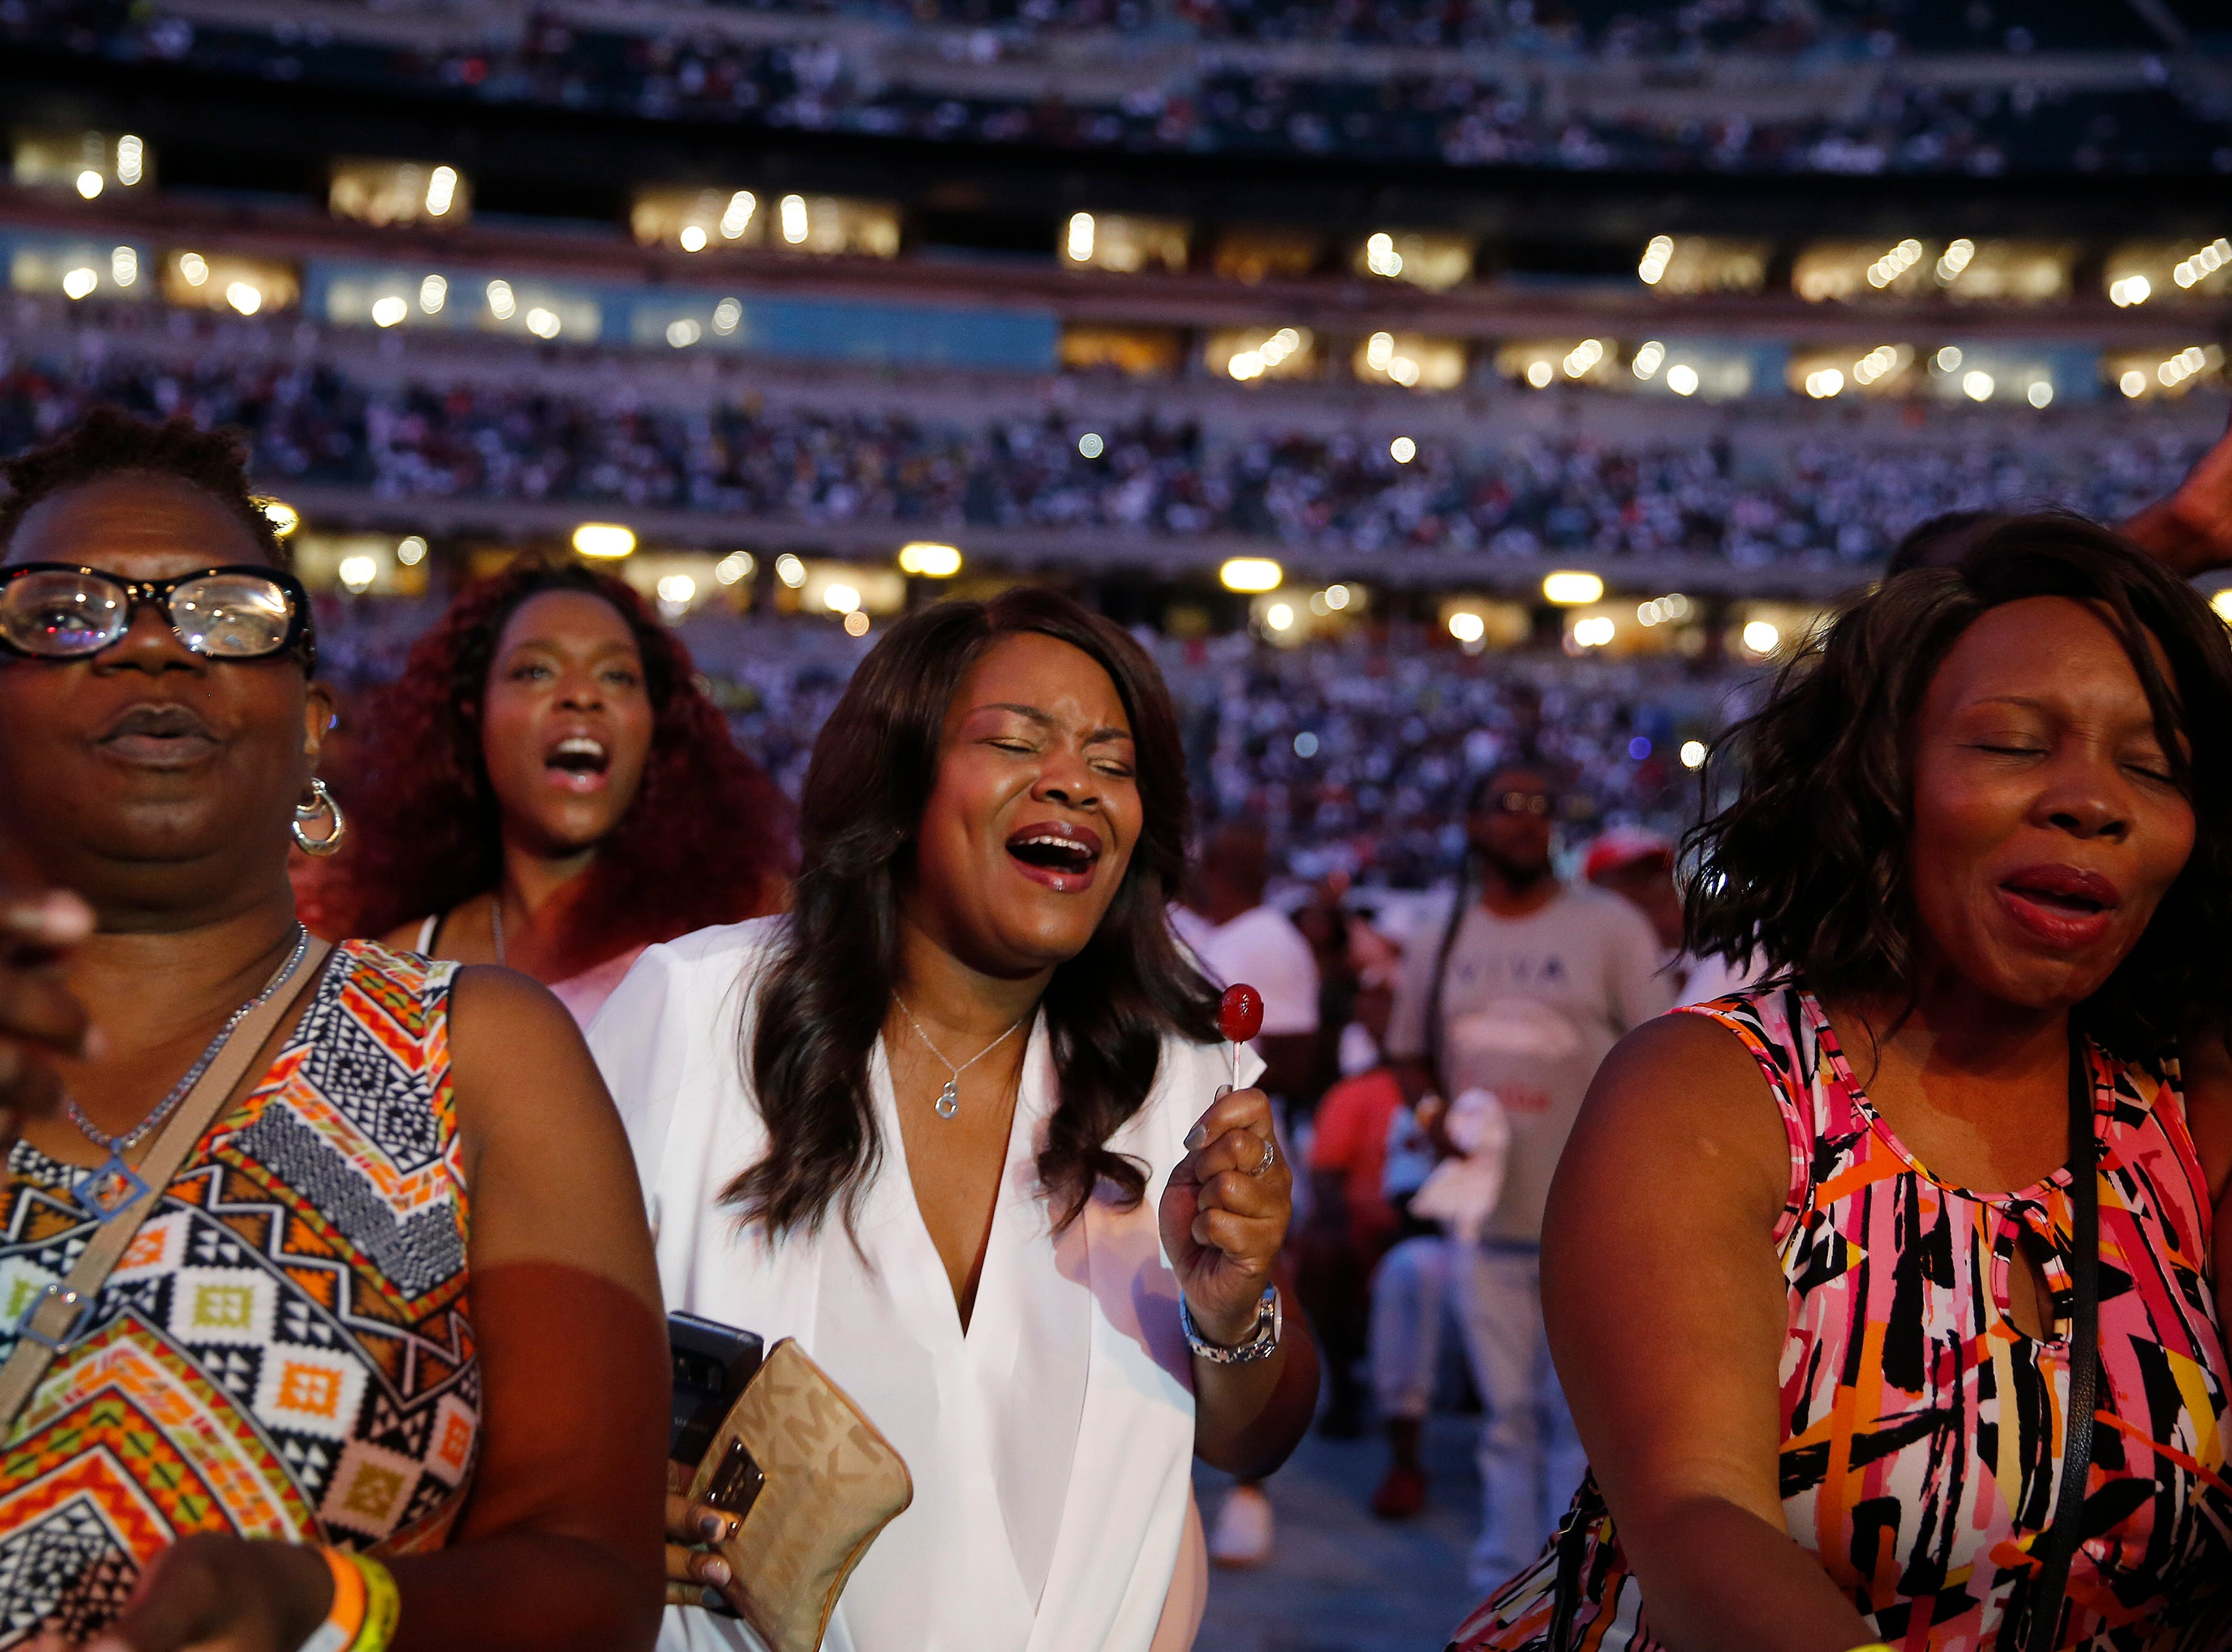 Fans sing along with Keith Sweat as he performs during the Cincinnati Music Festival.